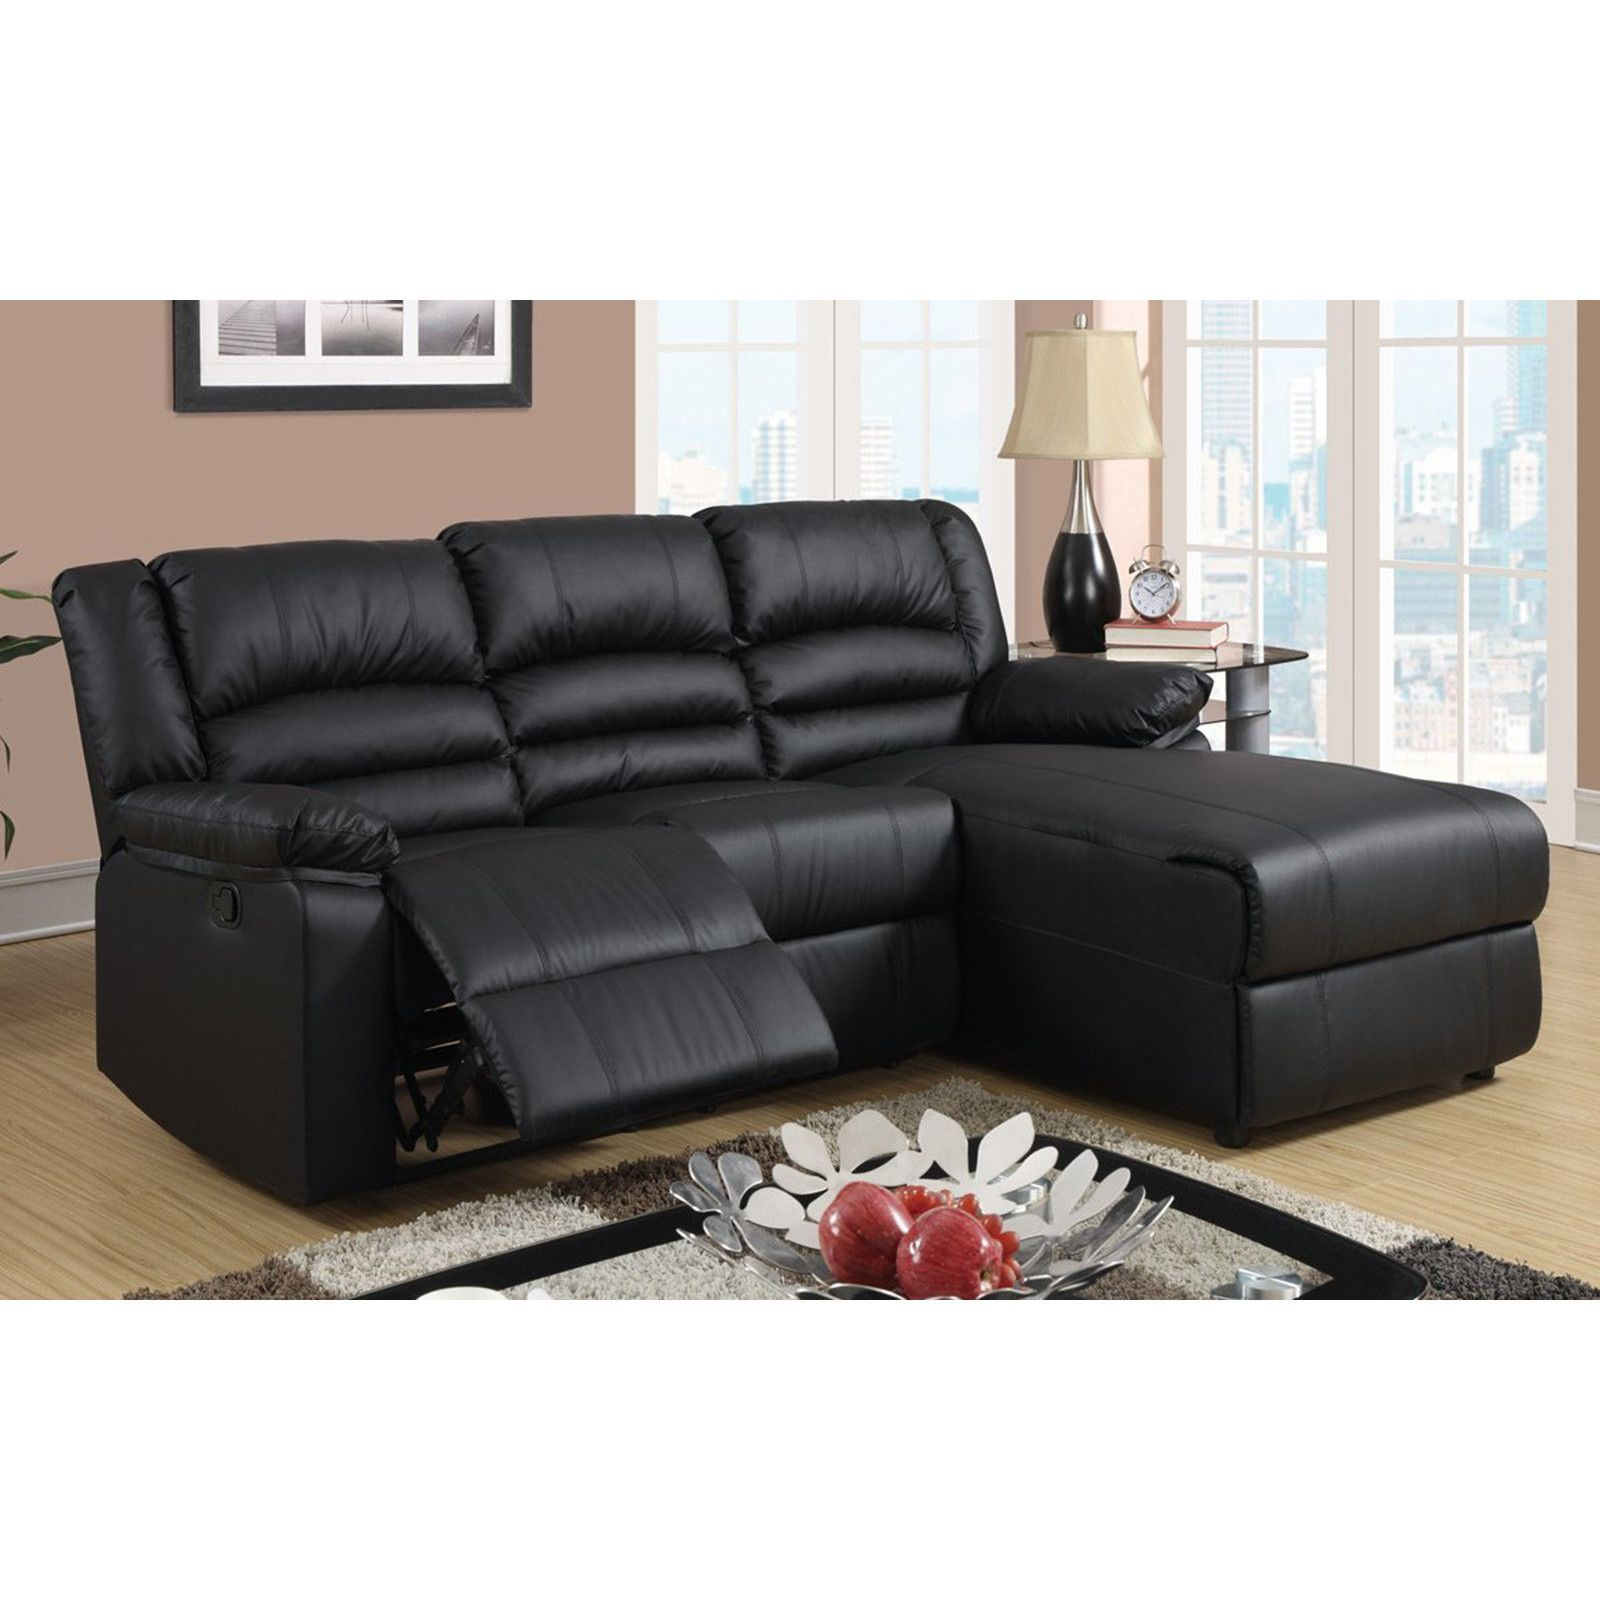 Madison Modern Small Space Sectional Reclining Sofa with